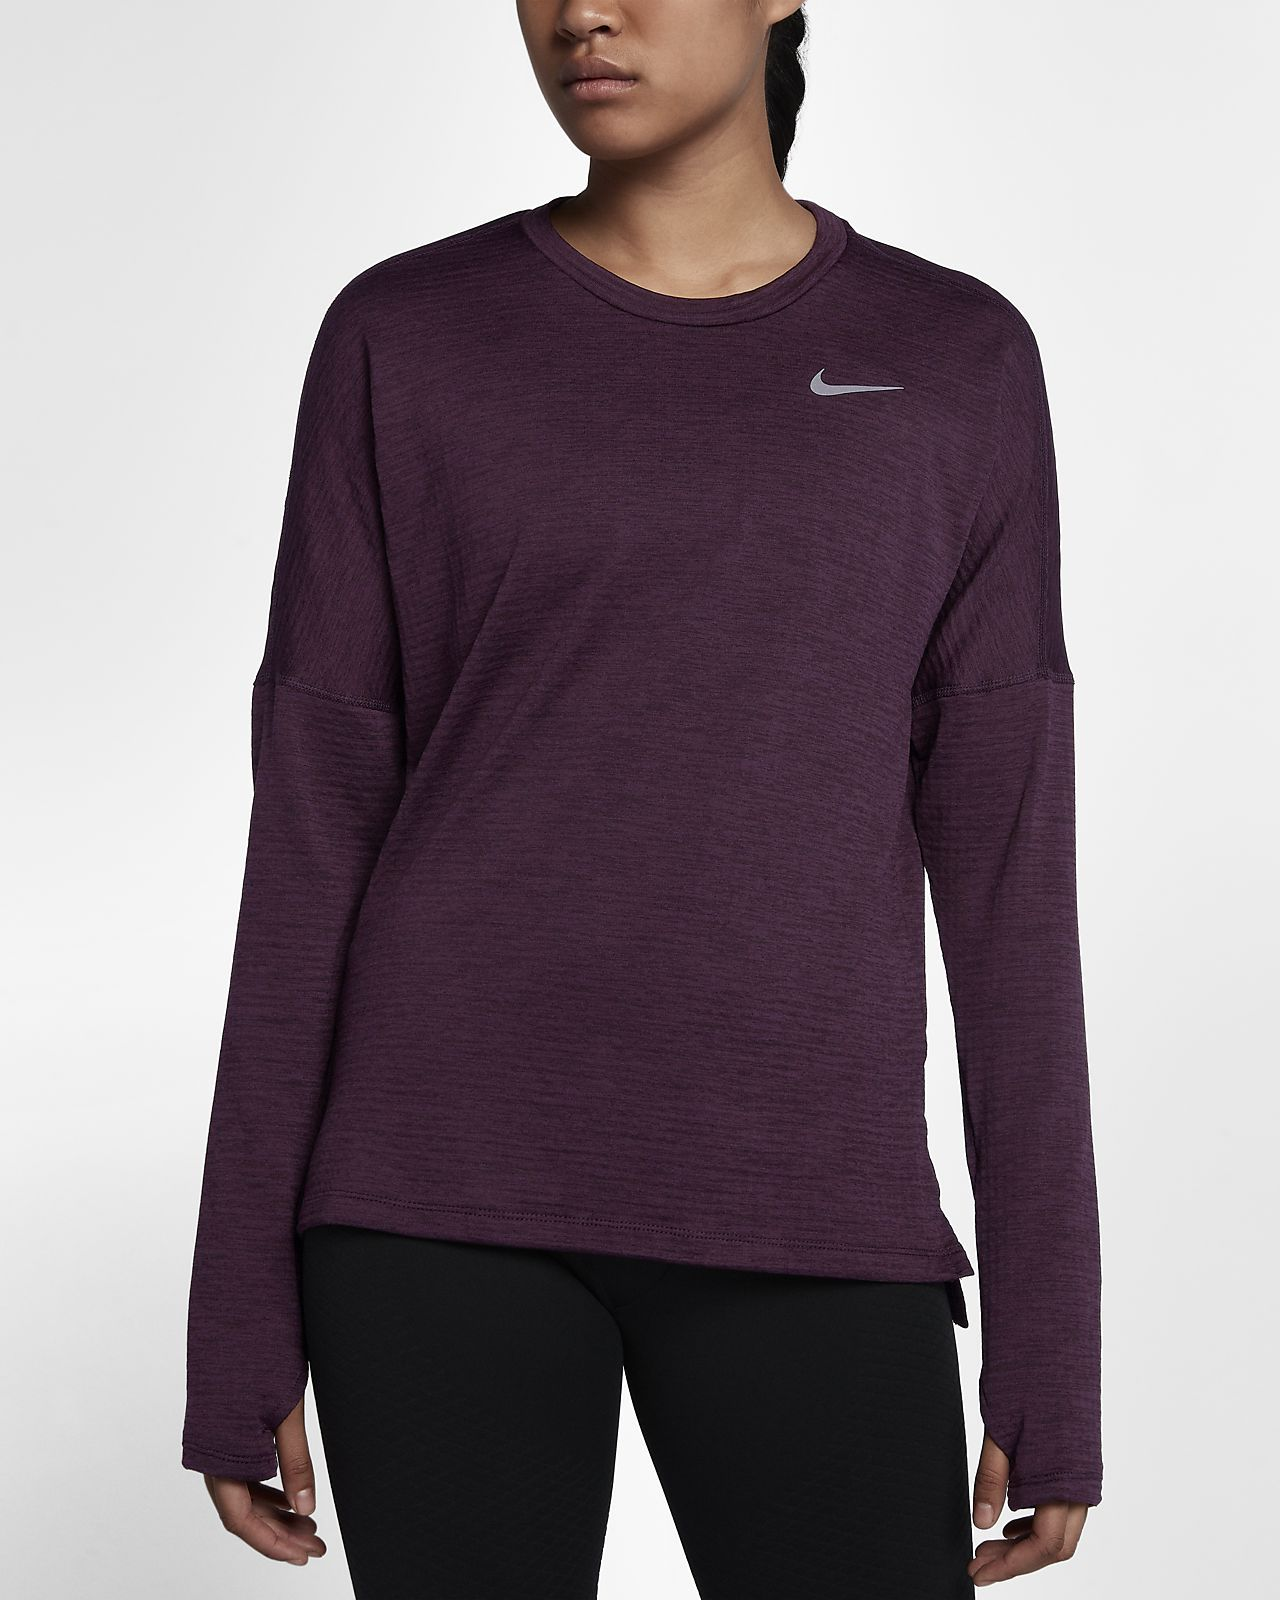 Nike Therma Sphere Element Women's Long Sleeve Running Top ...